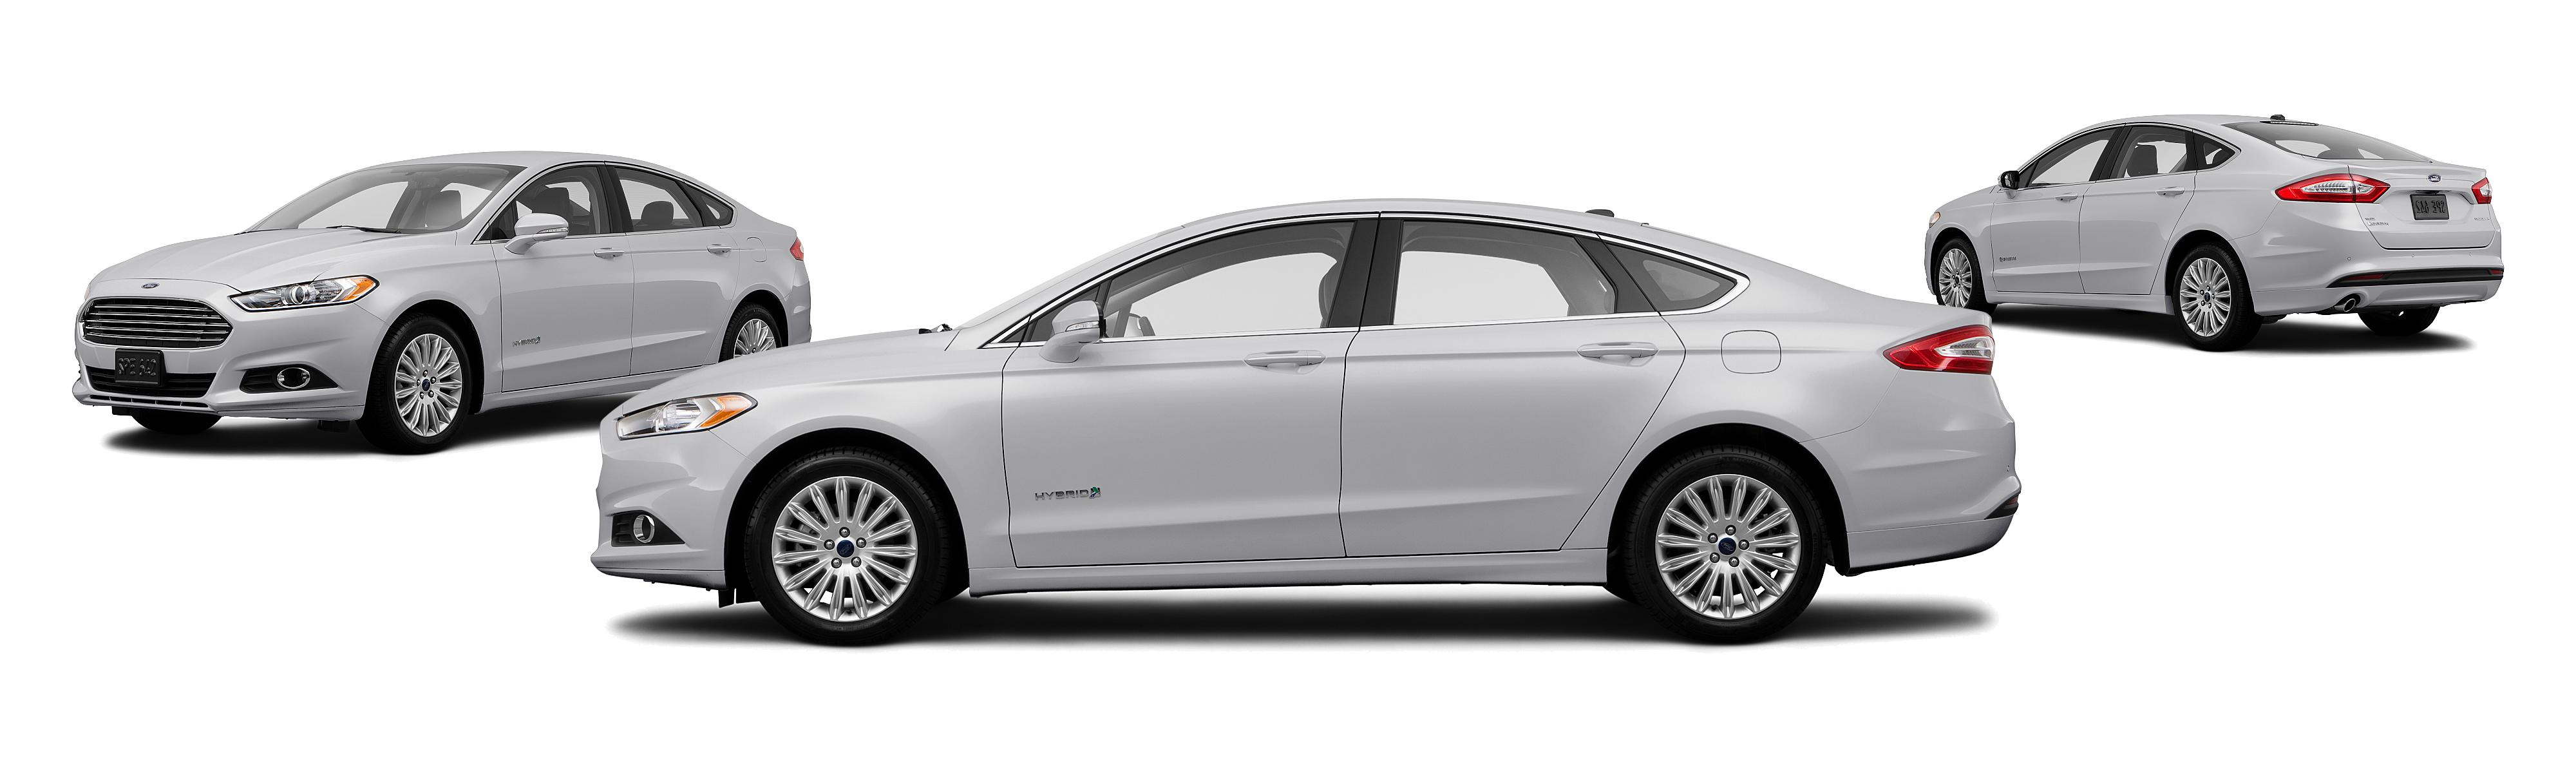 2014 Ford Fusion Hybrid S 4dr Sedan Research GrooveCar